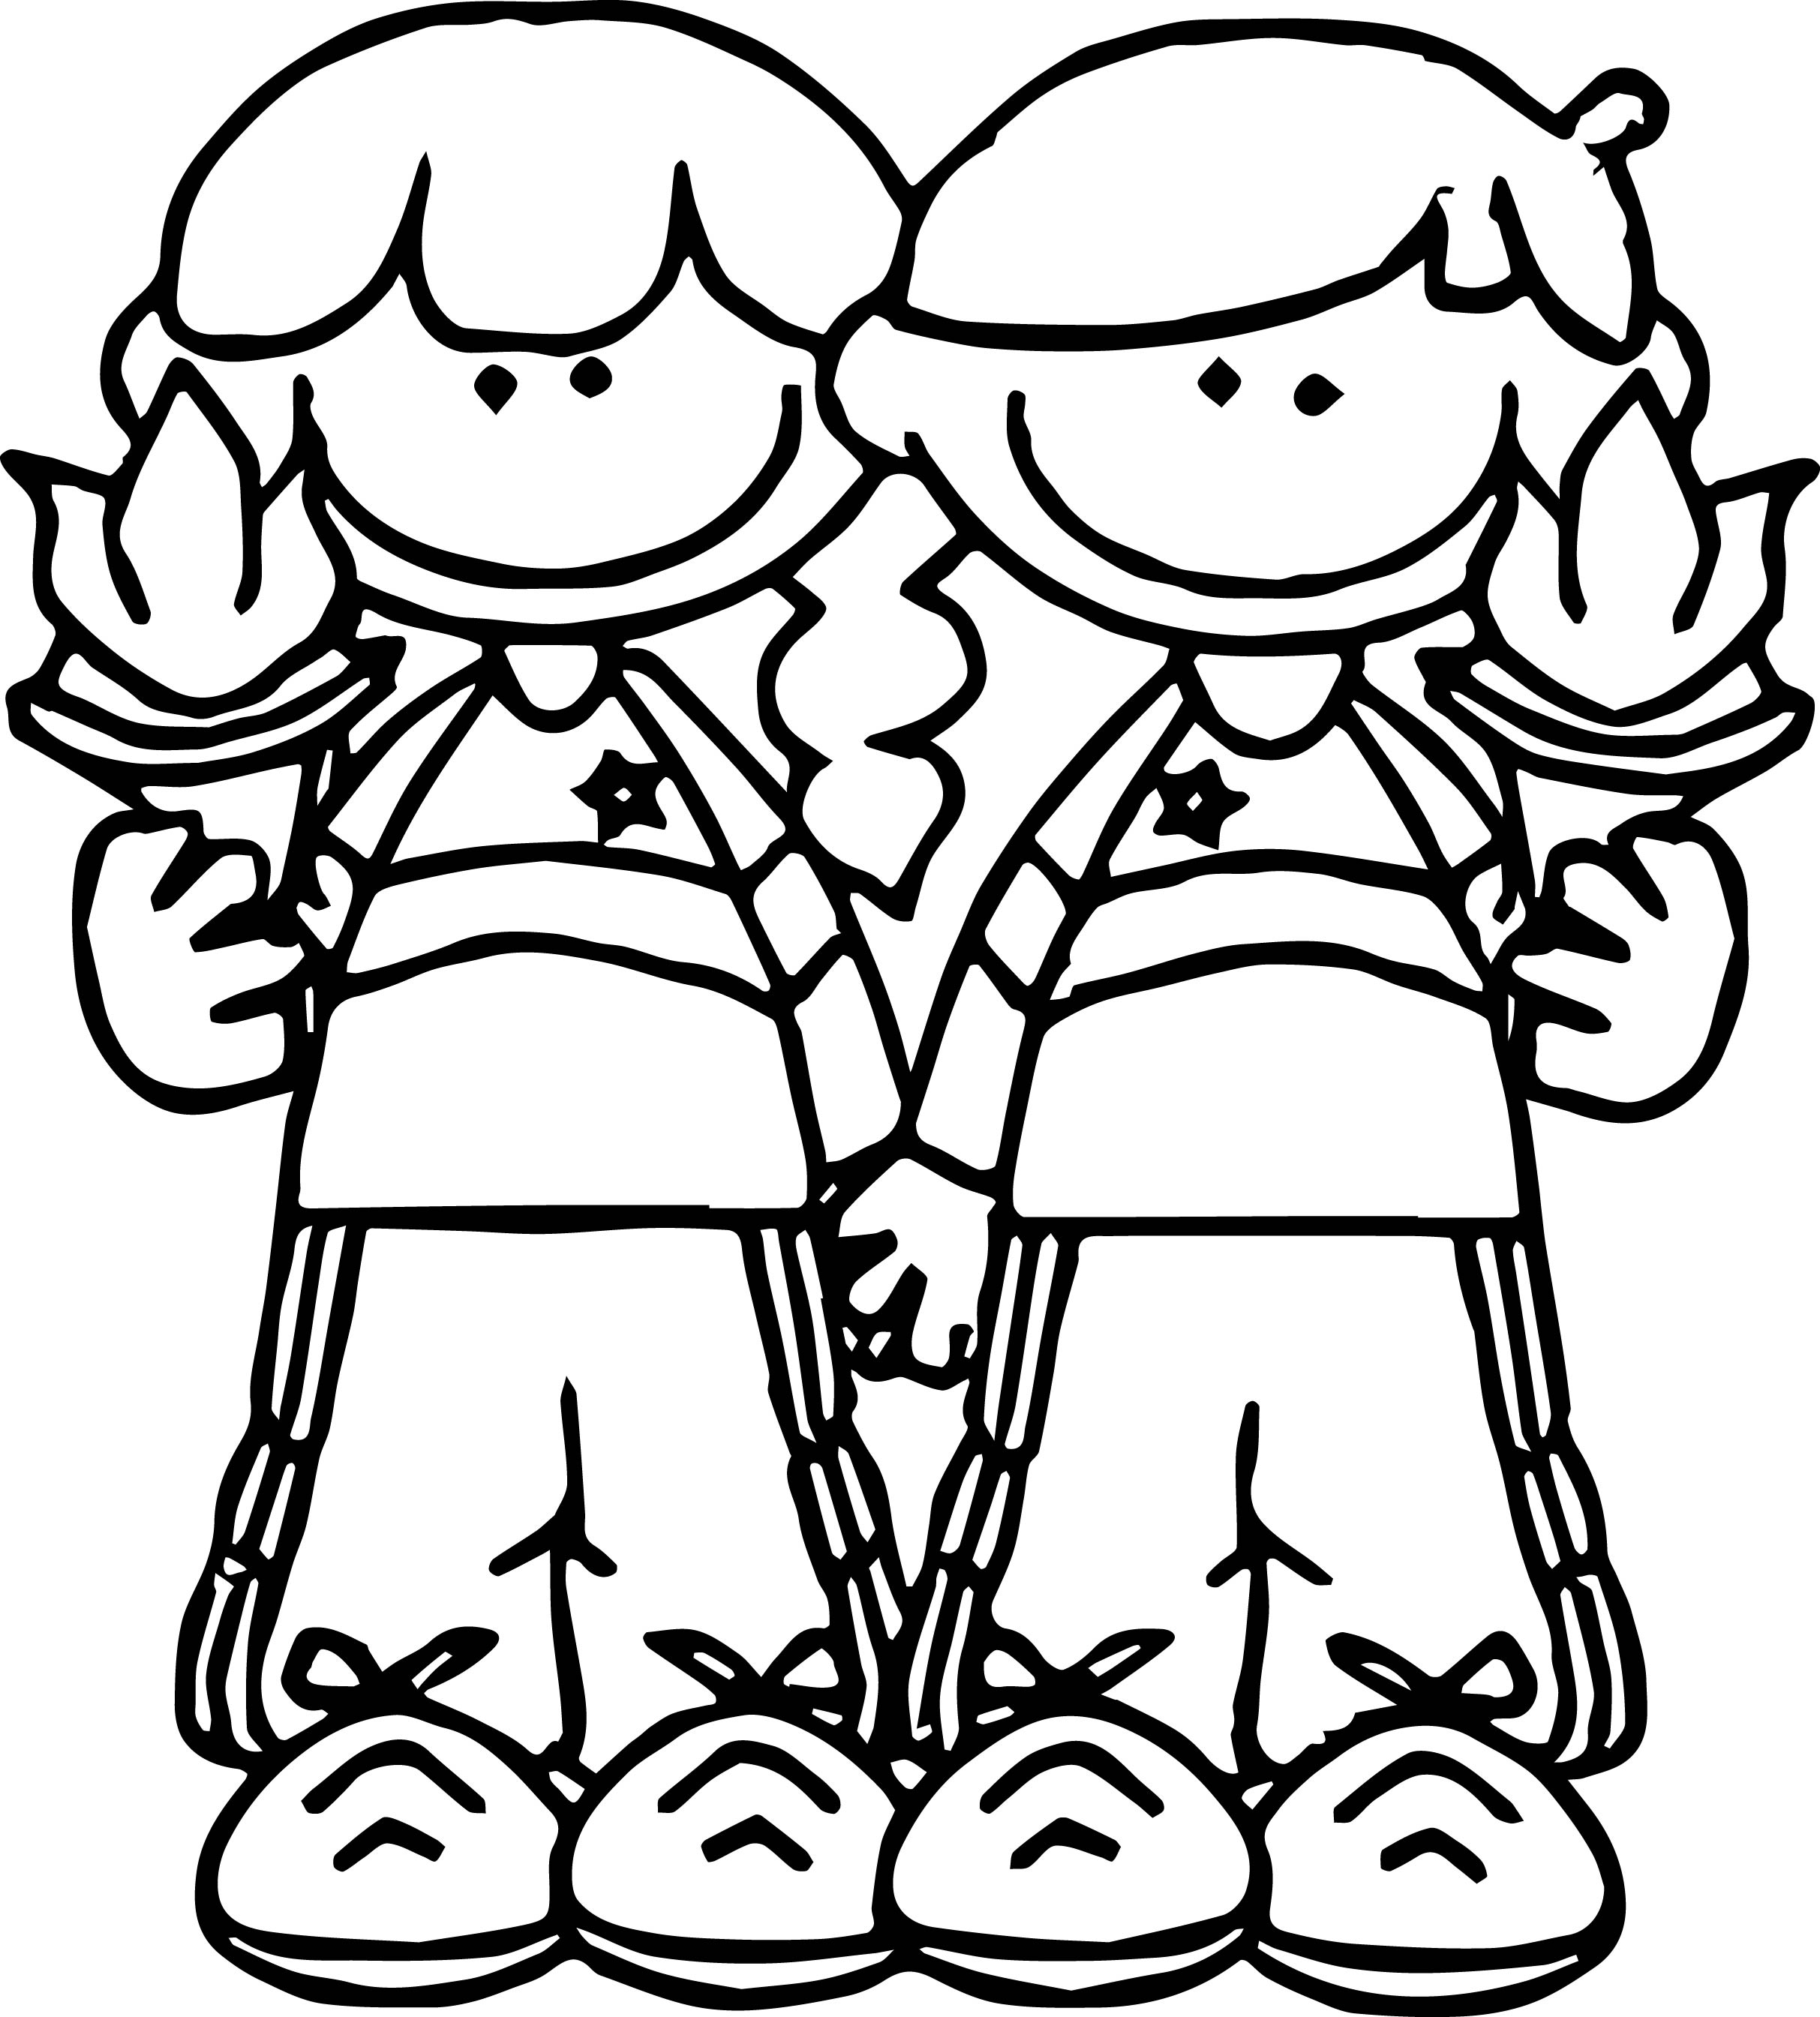 coloring for grade 3 3rd grade coloring page wecoloring coloring for 3 grade